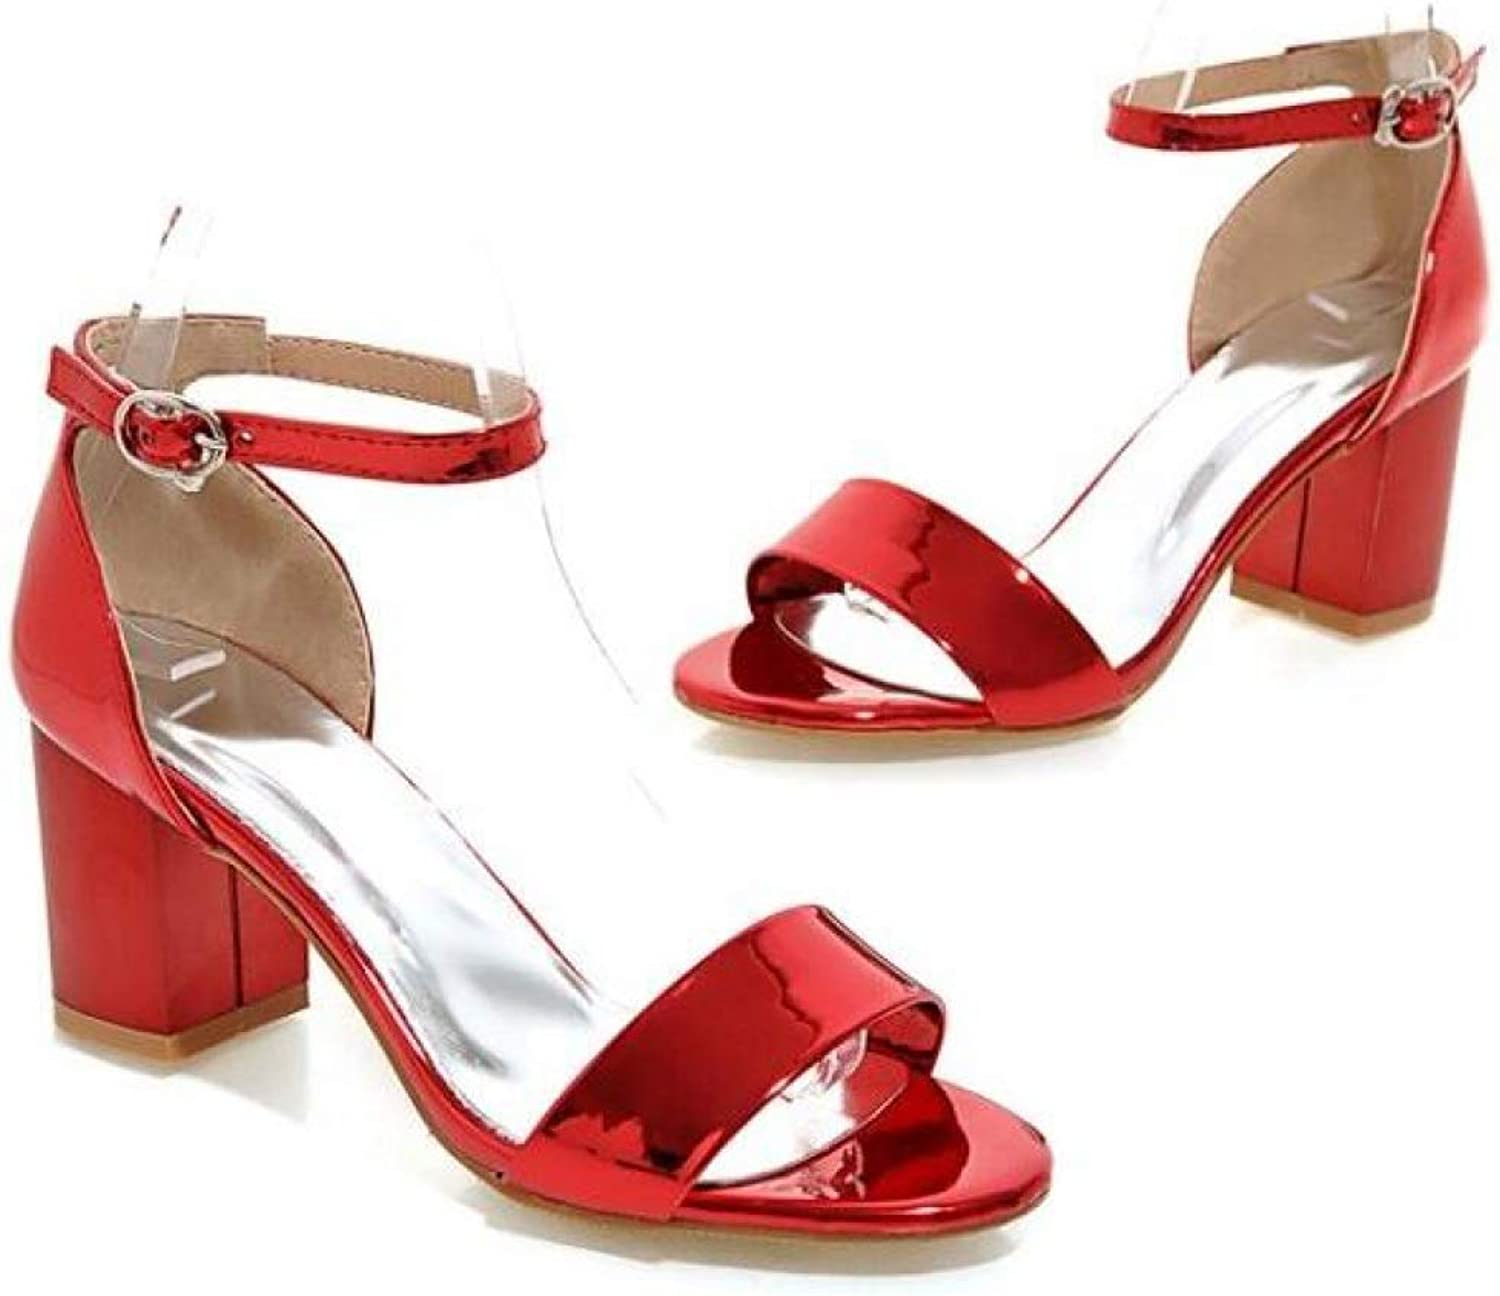 T-JULY Women's Sandals Square High Heel Peep Toe Sexy Fashion Casual shoes with Buckle Ankle Strap for Spring Summer